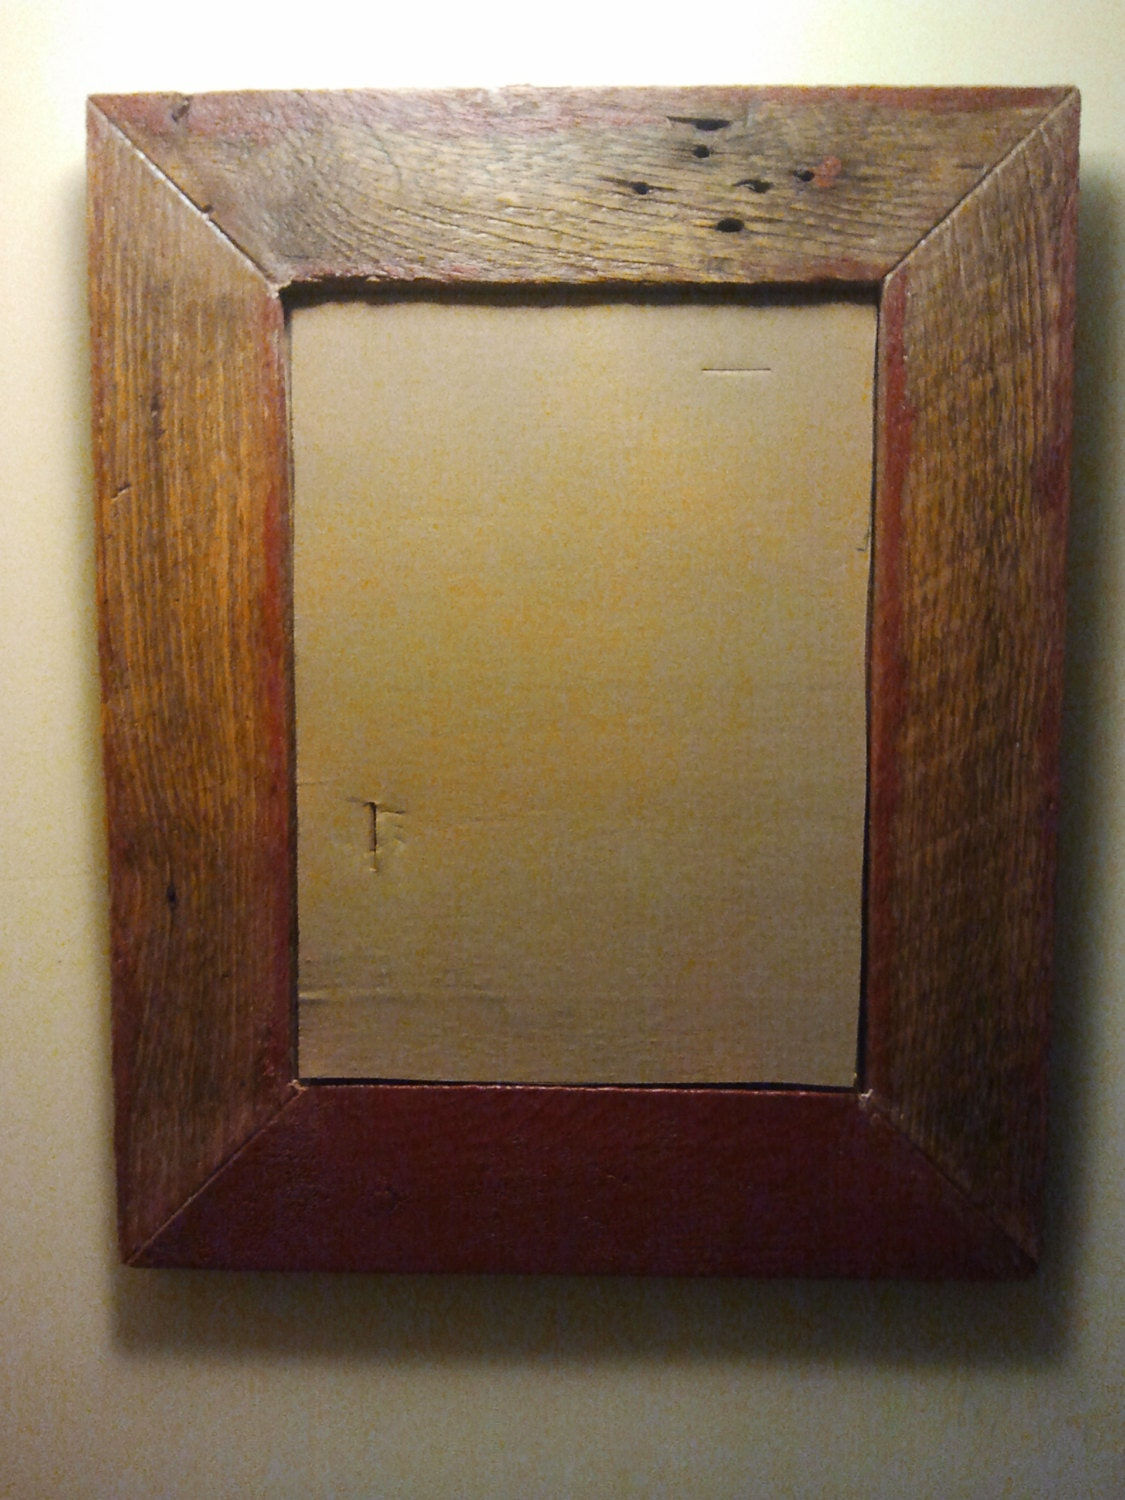 Barn Wood Mirror Rustic Home Decor: Unavailable Listing On Etsy